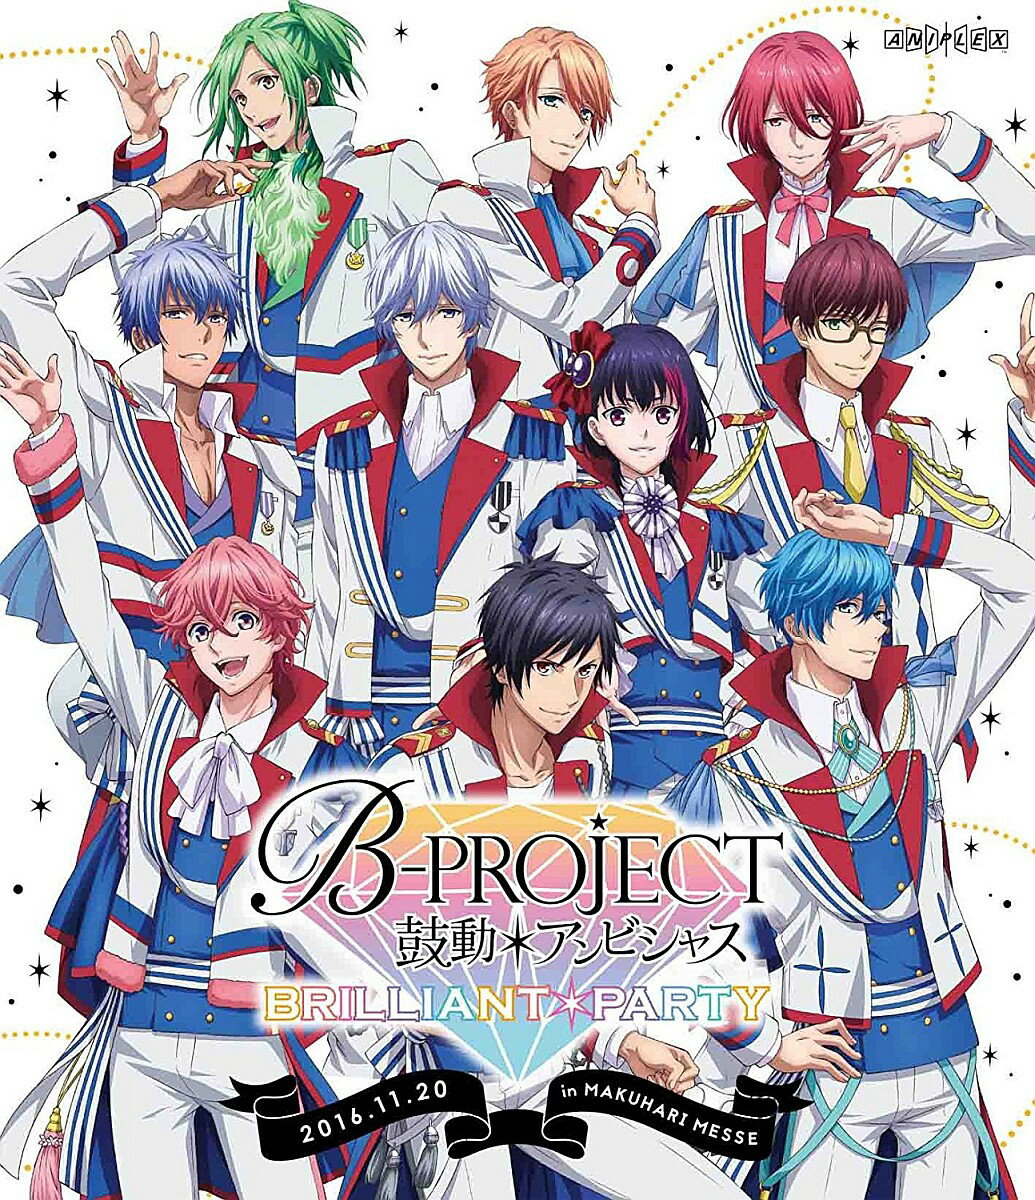 B-PROJECT 鼓動*アンビシャス BRILLIANT*PARTY【Blu-ray】画像